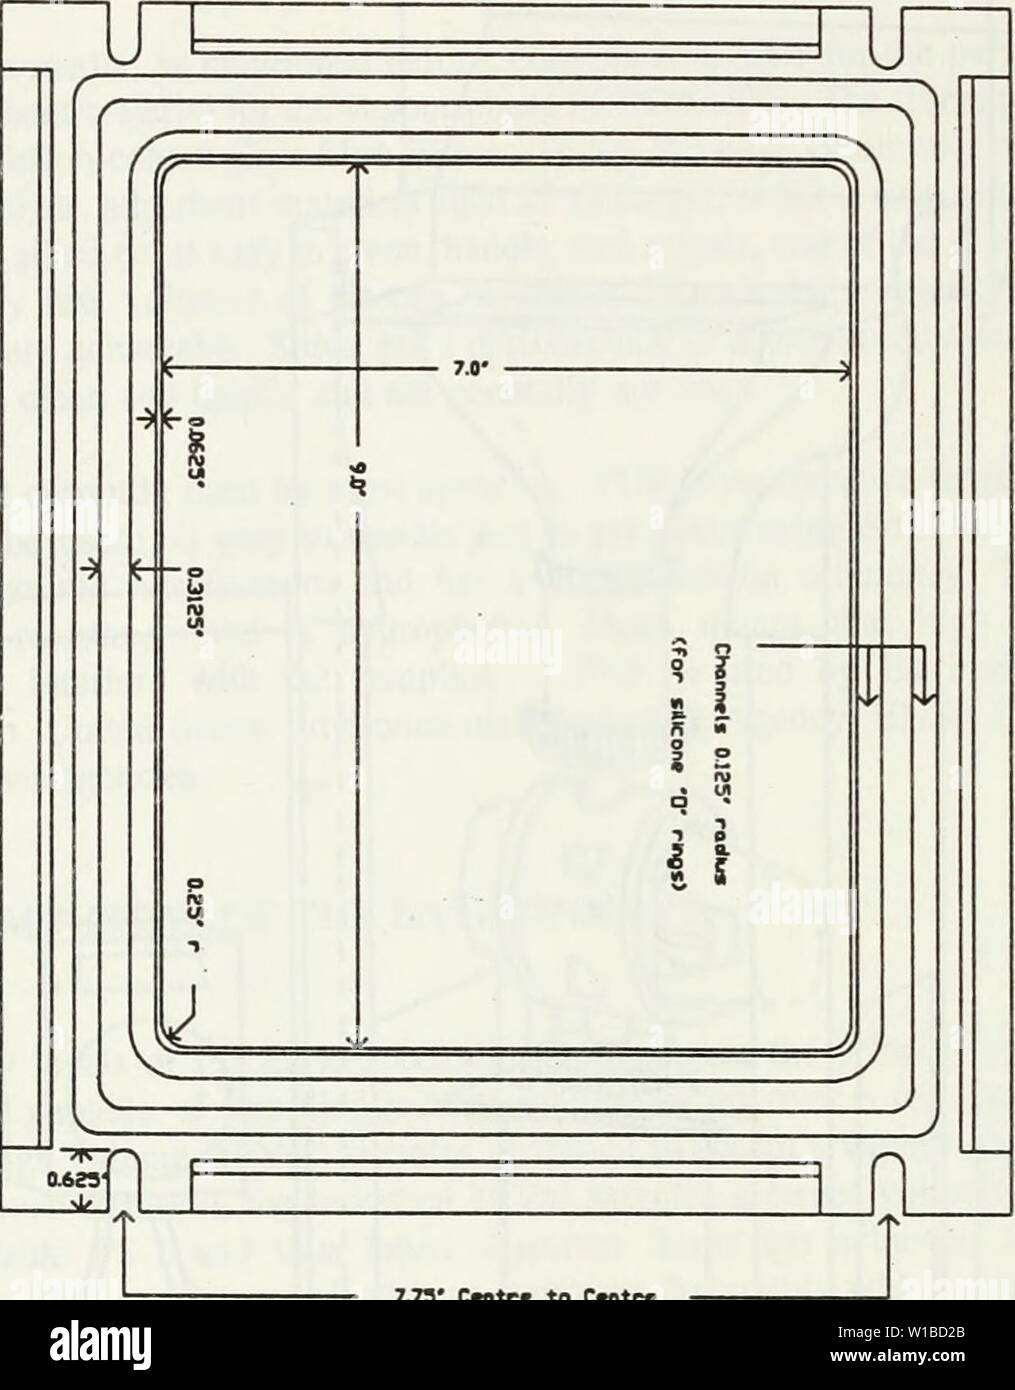 Archive image from page 37 of Determination of chlorinated